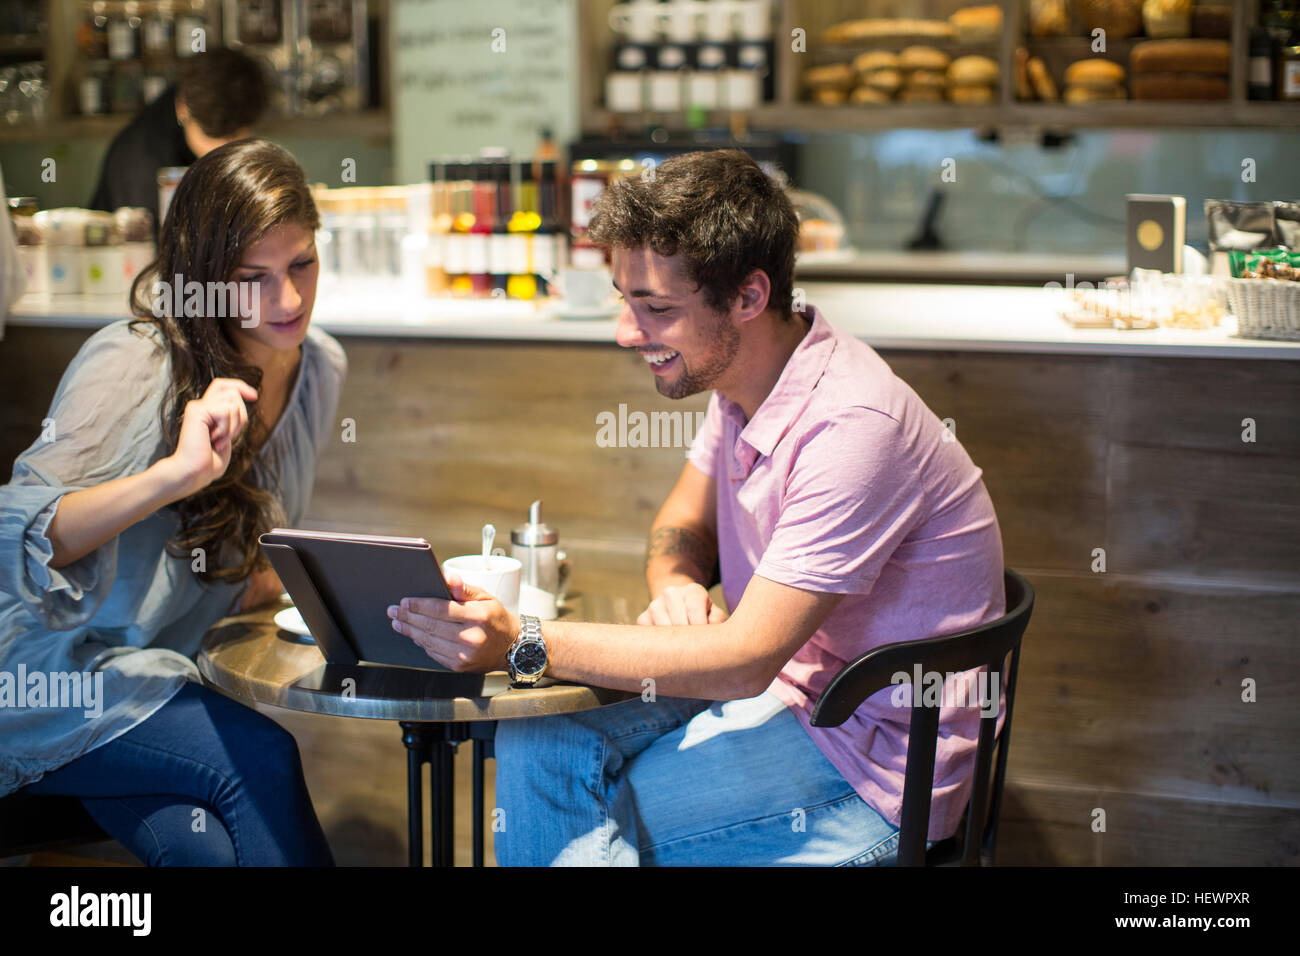 Young couple in cafe looking at digital tablet - Stock Image